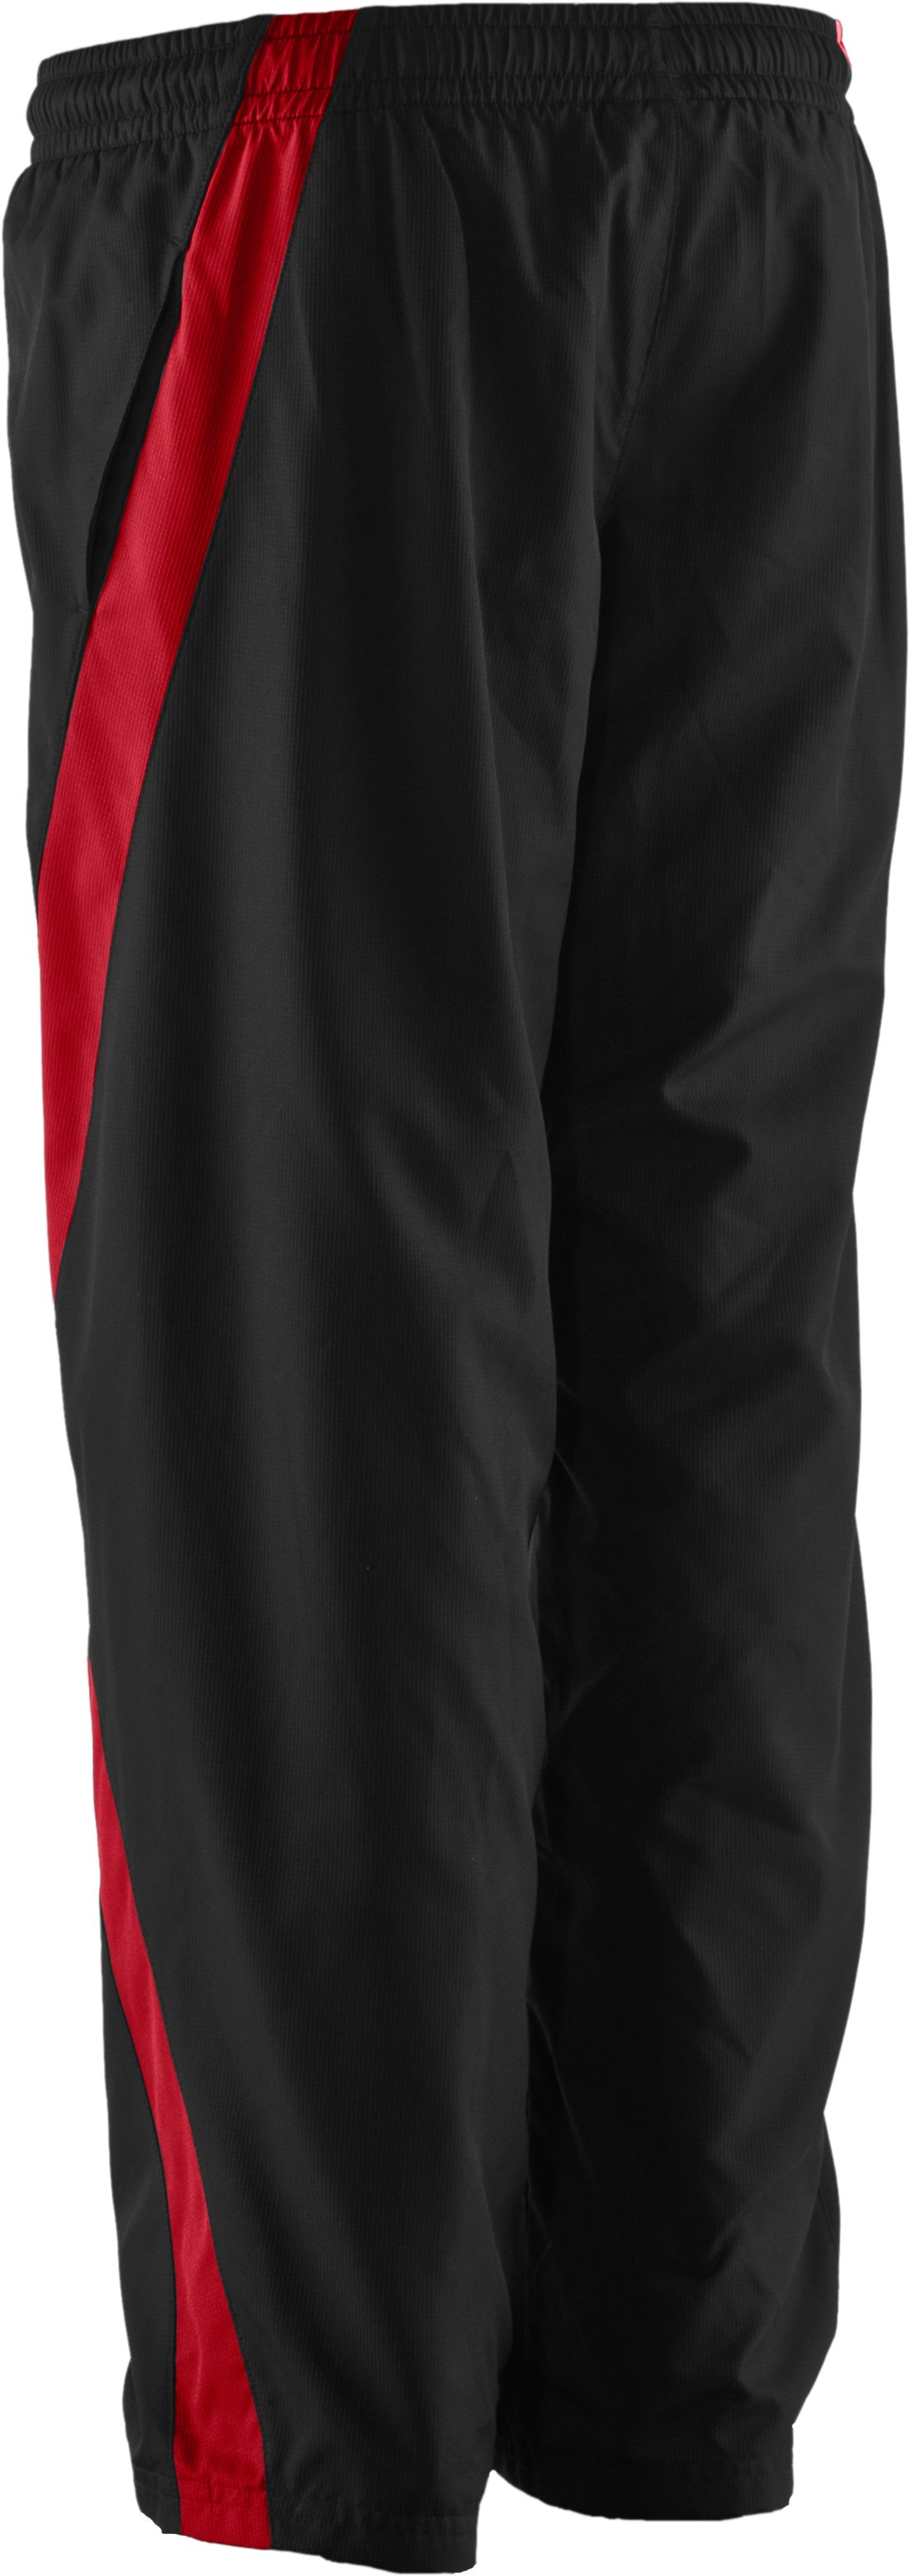 Boys' UA Turbulent Woven Pants, Black